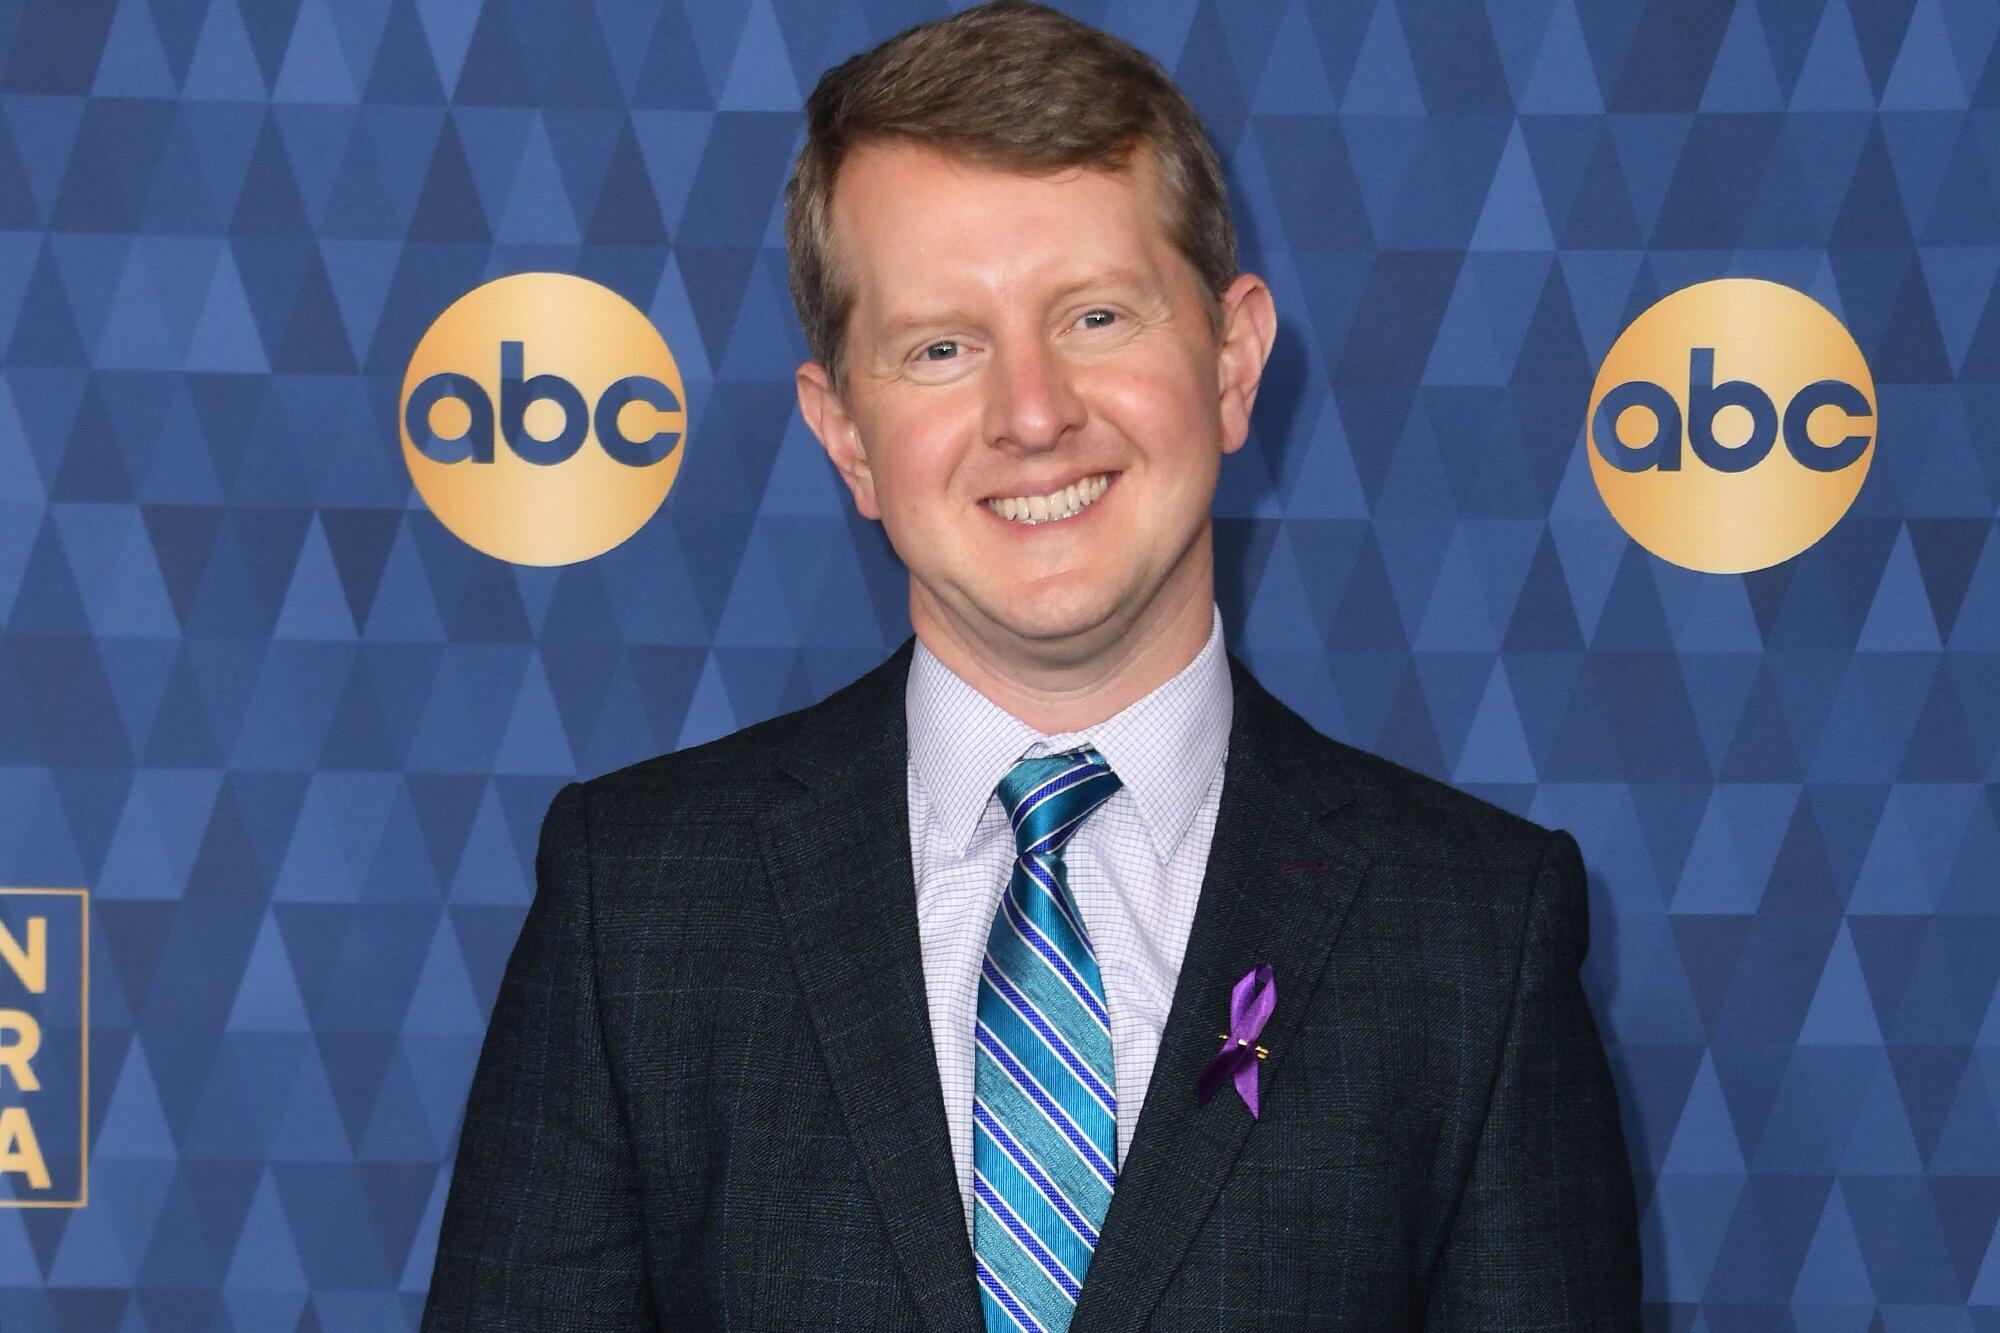 Ken Jennings Thanks Alex Trebek as His Six Weeks as Jeopardy! Guest Host Comes to an End - Yahoo Entertainment